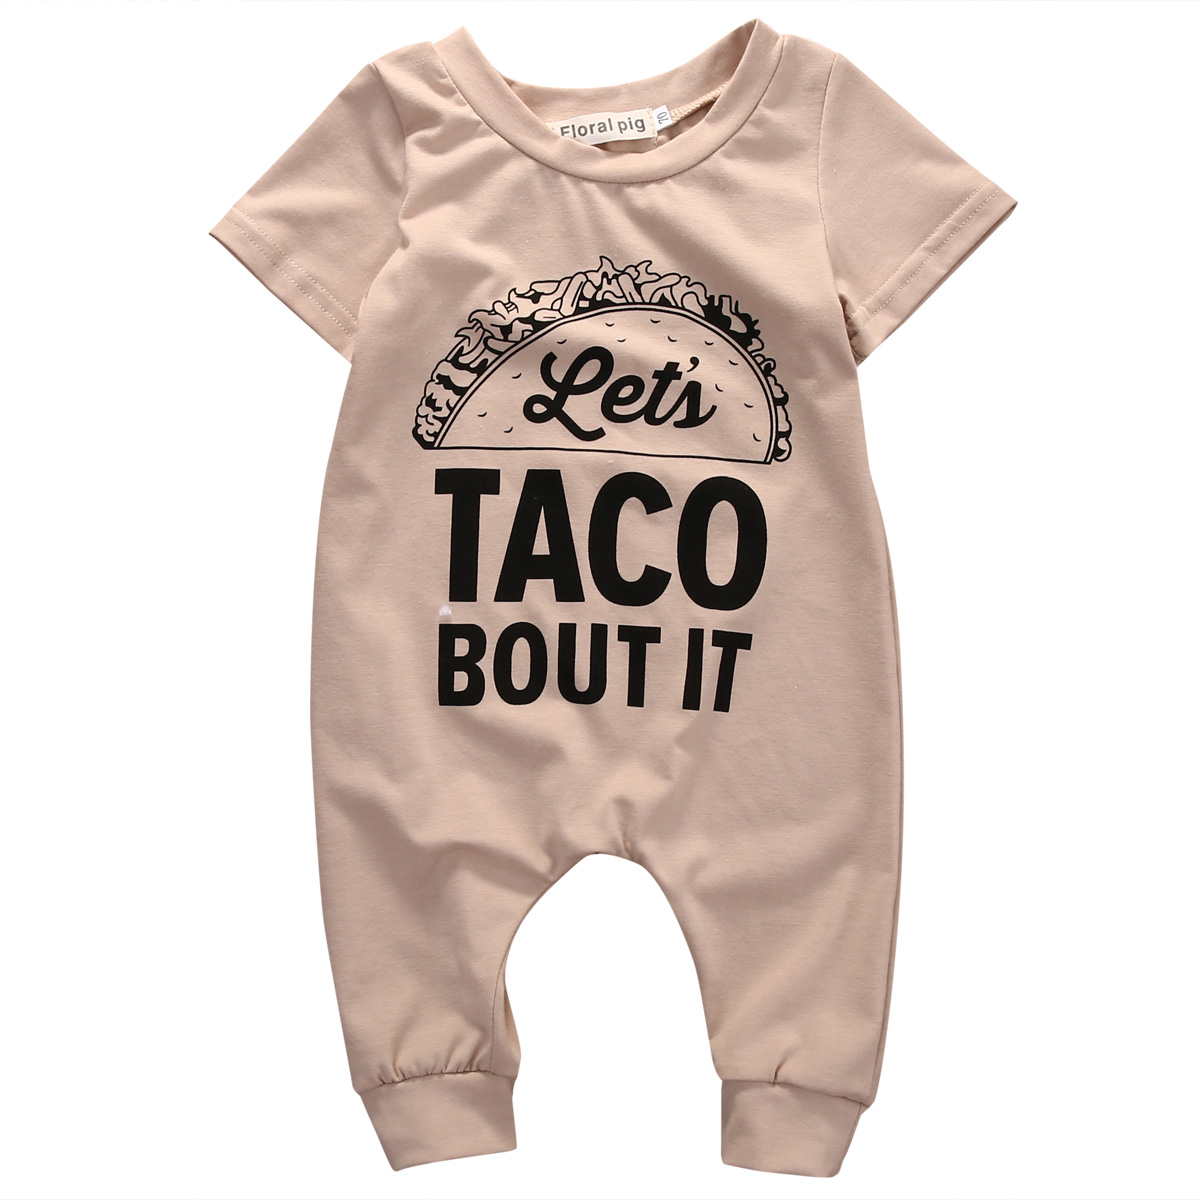 Newborn I Just Really Love Tacos Sleeveless Baby Clothes Playsuit Suit 0-24 Months